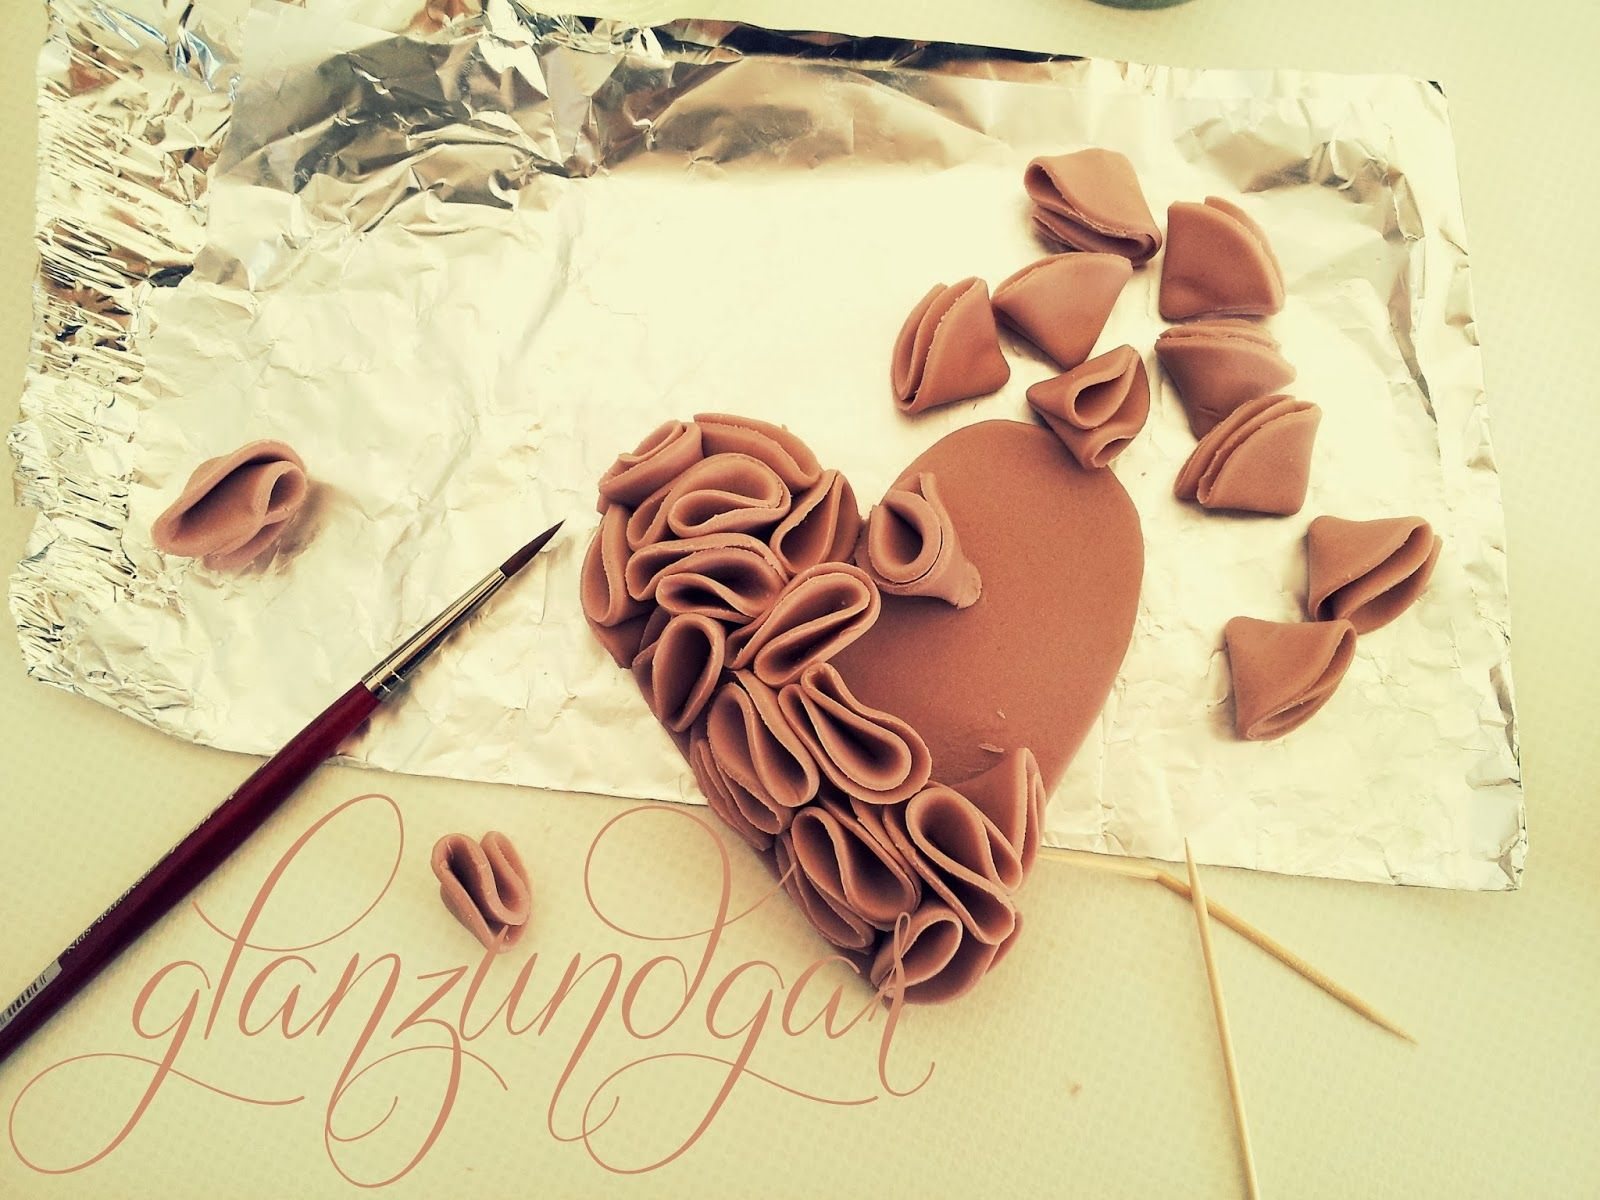 gum paste ruffled heart tutorial - how to make a ruffled heart cake topper - german -